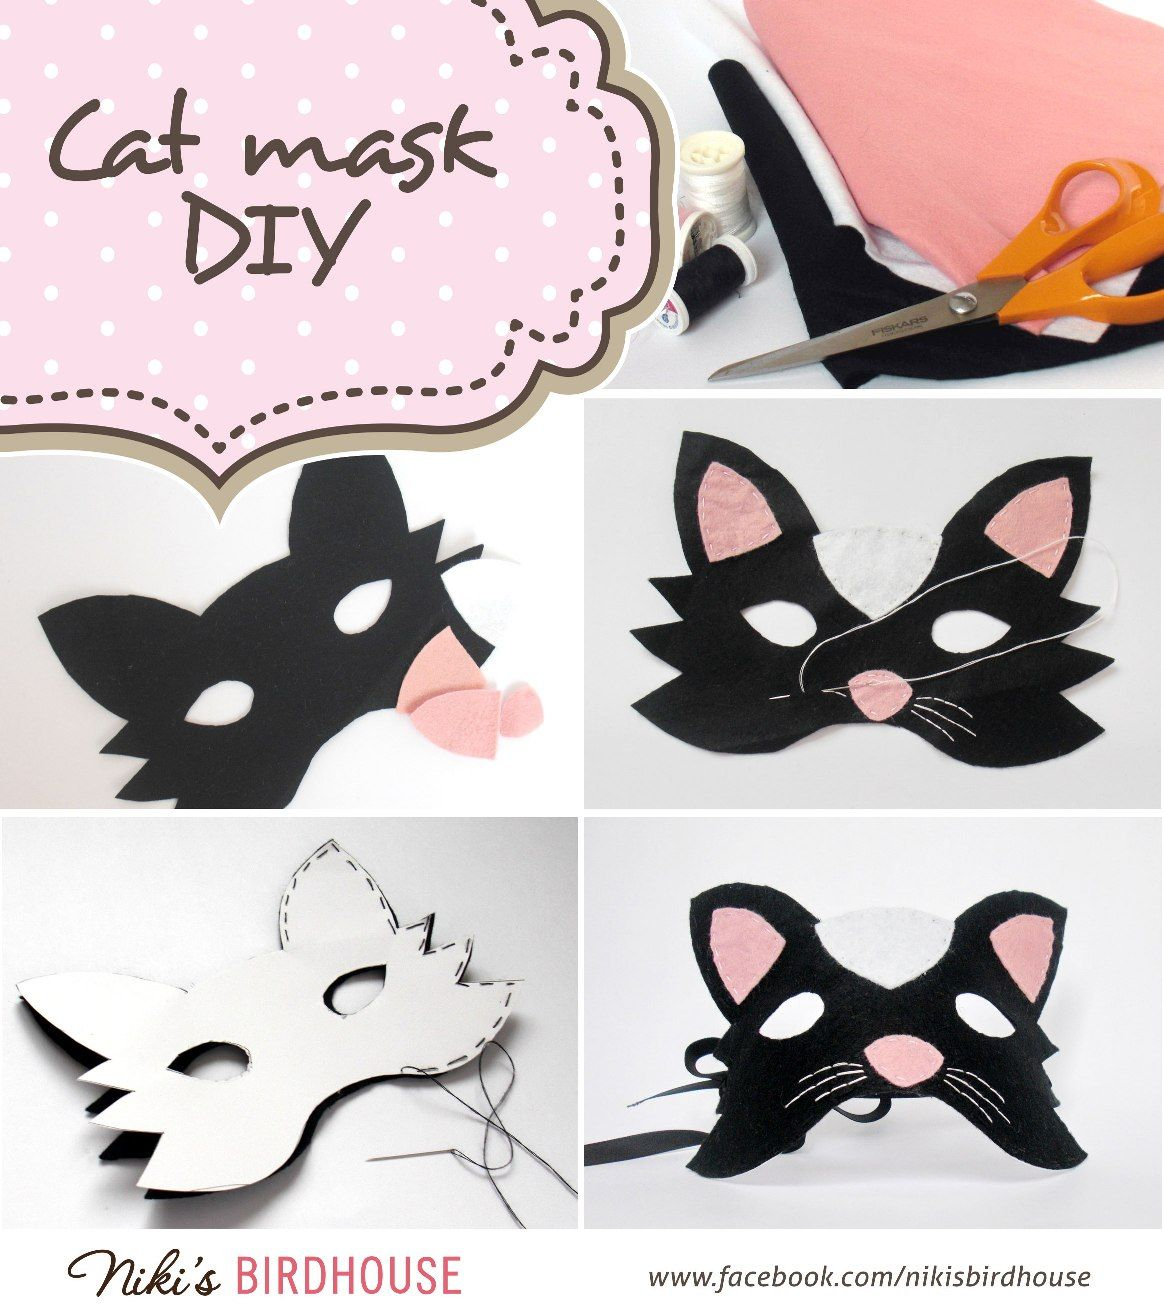 Blank Eye Masks To Decorate Diy Cat Mask Made Of Paper And Wool Feltif You Don't Feel Like